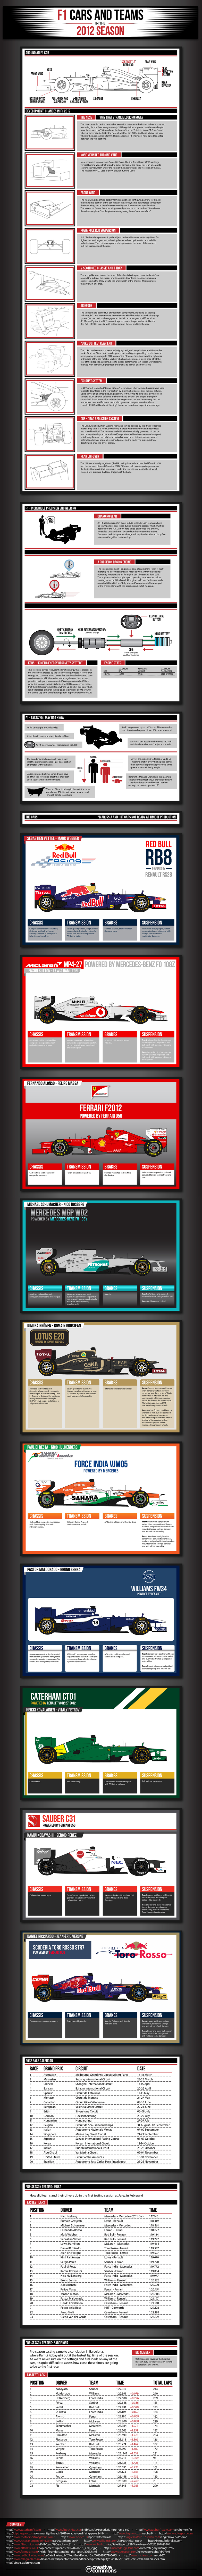 F1 Infographic